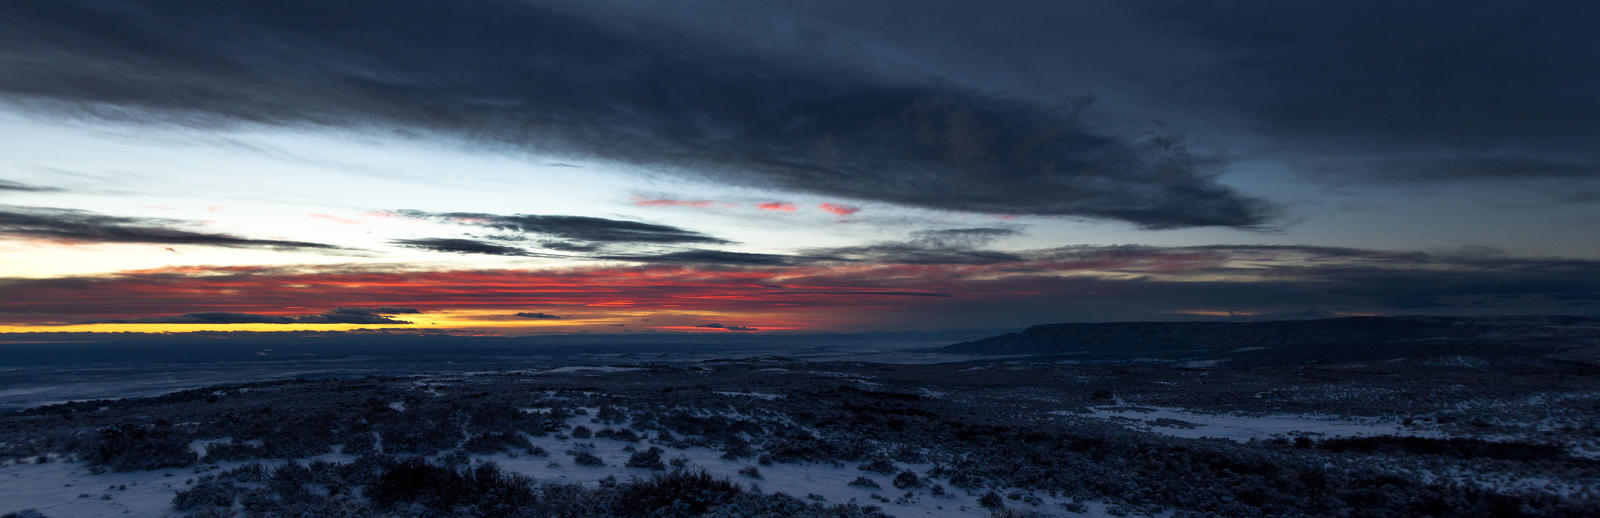 Dinosaur Monument Sunset by mofig